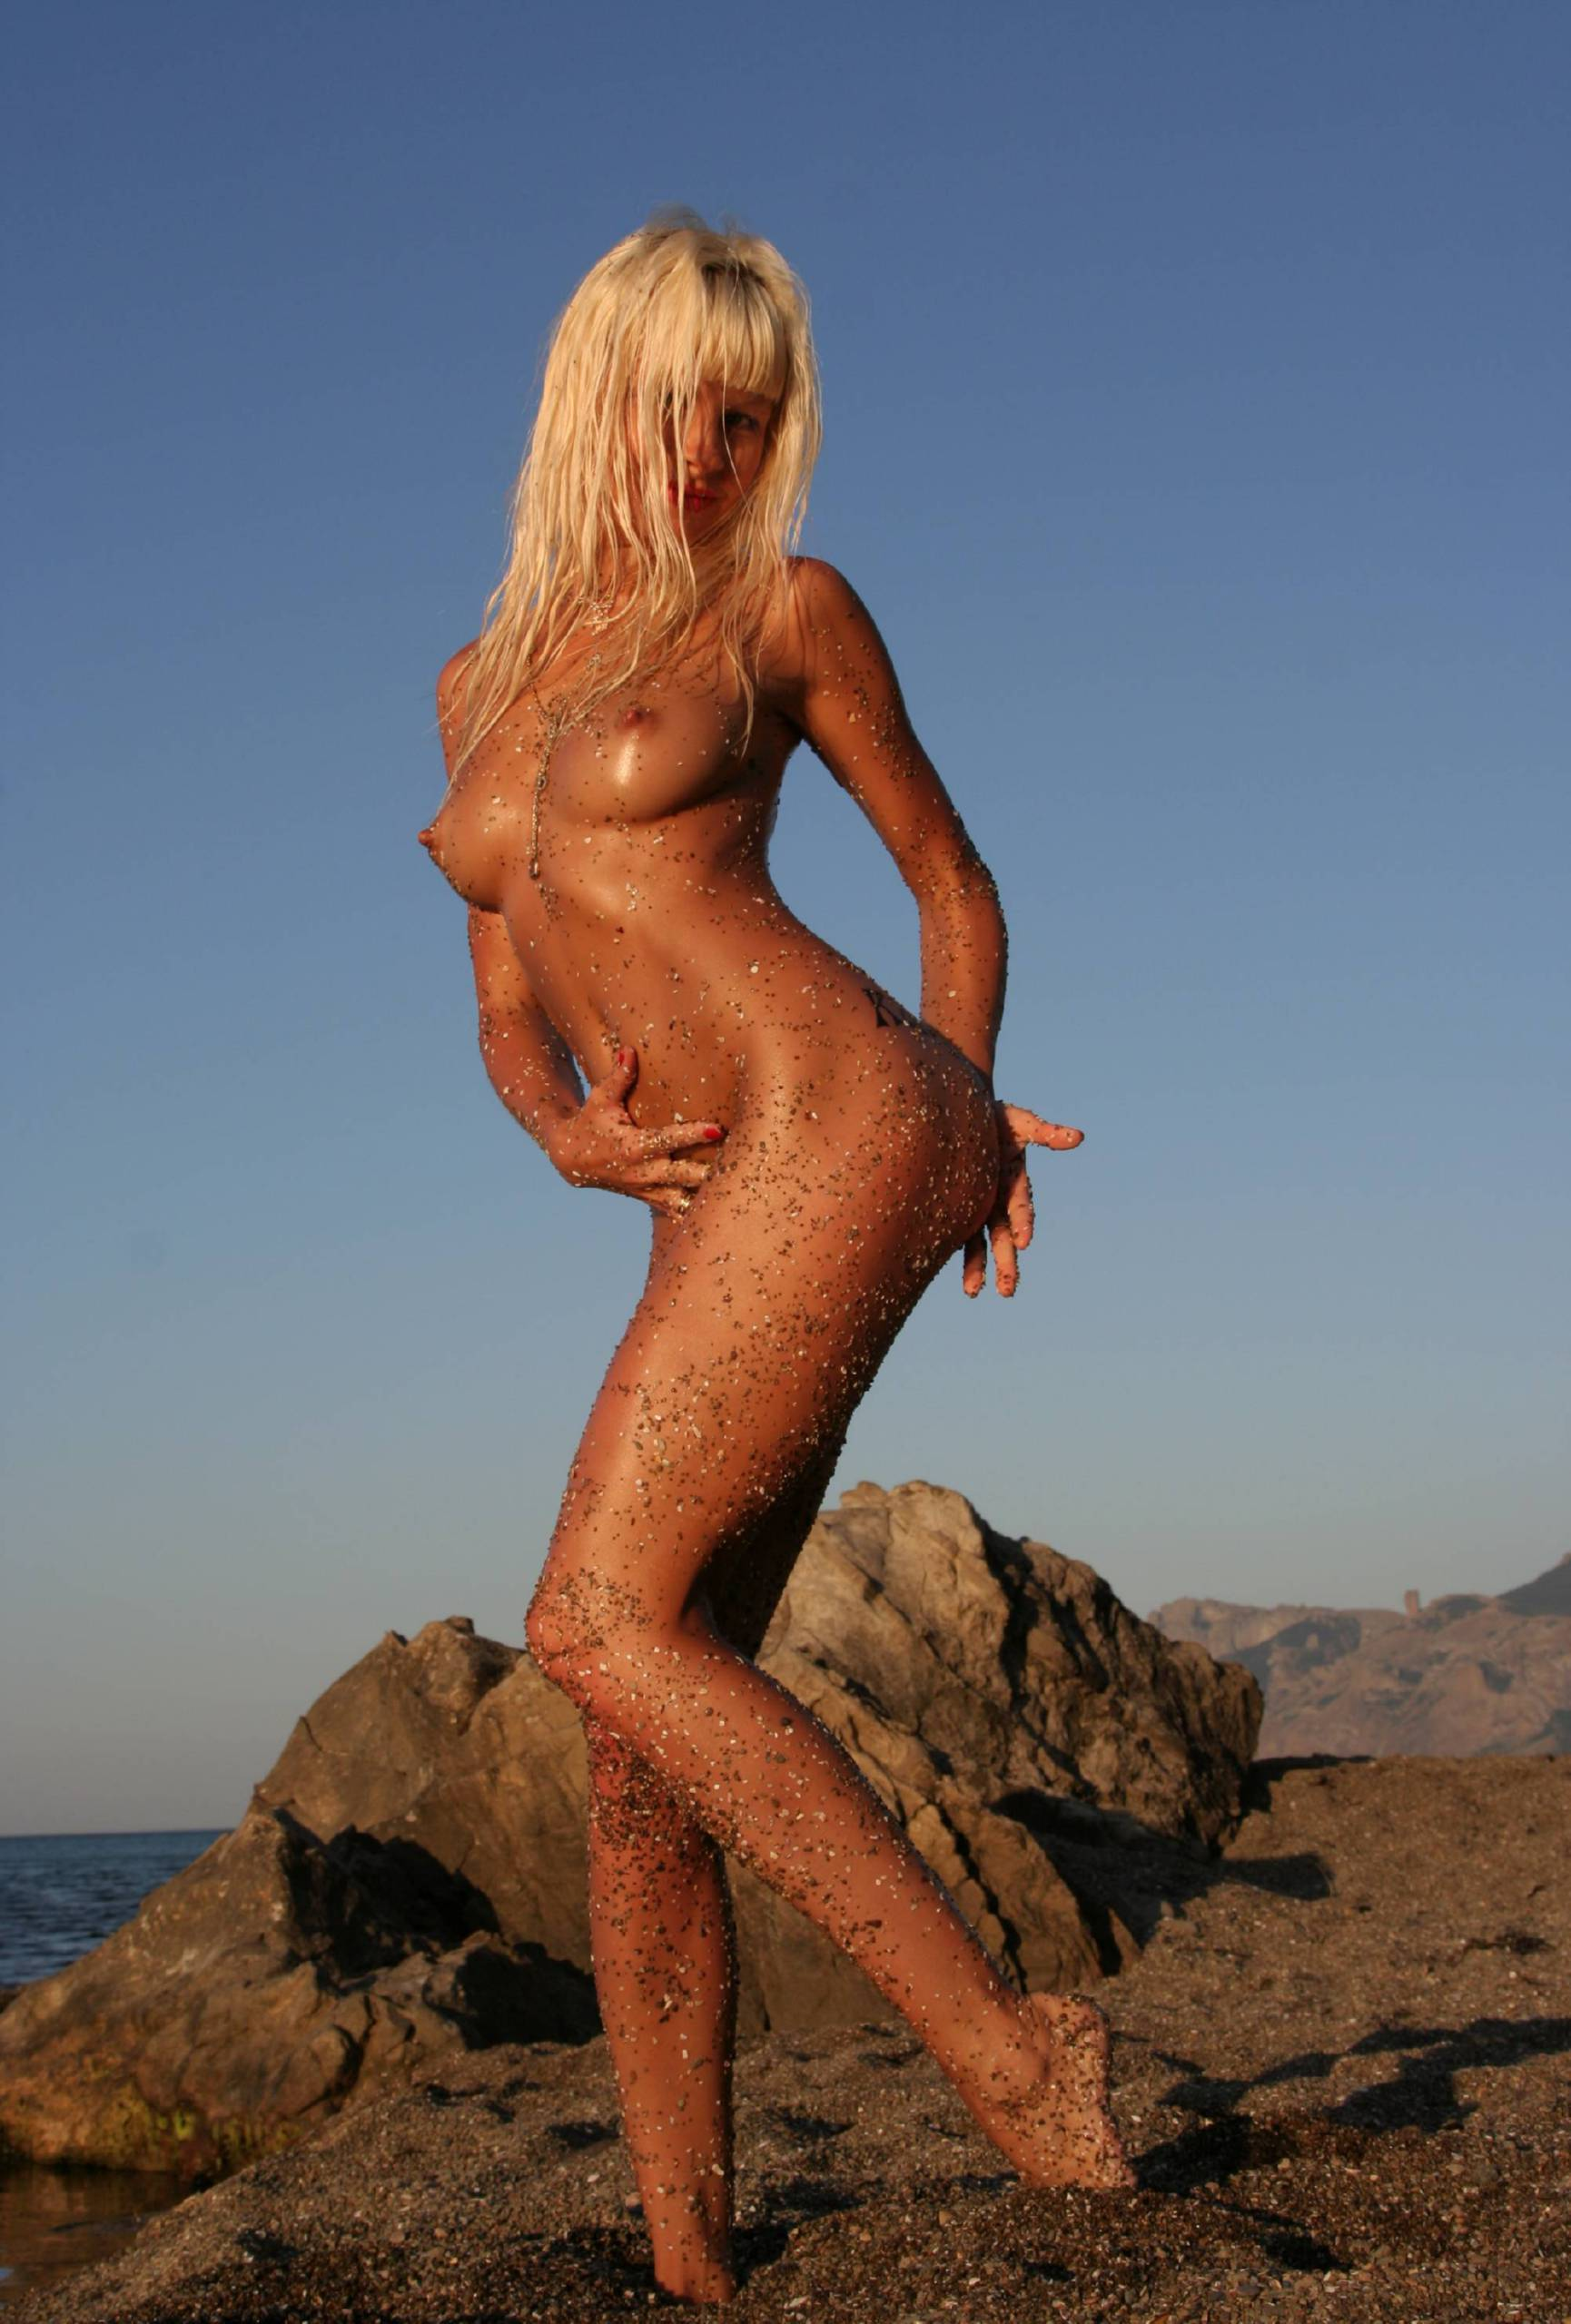 Nudist Pictures Nudist Sunblaze on Rocks - 1